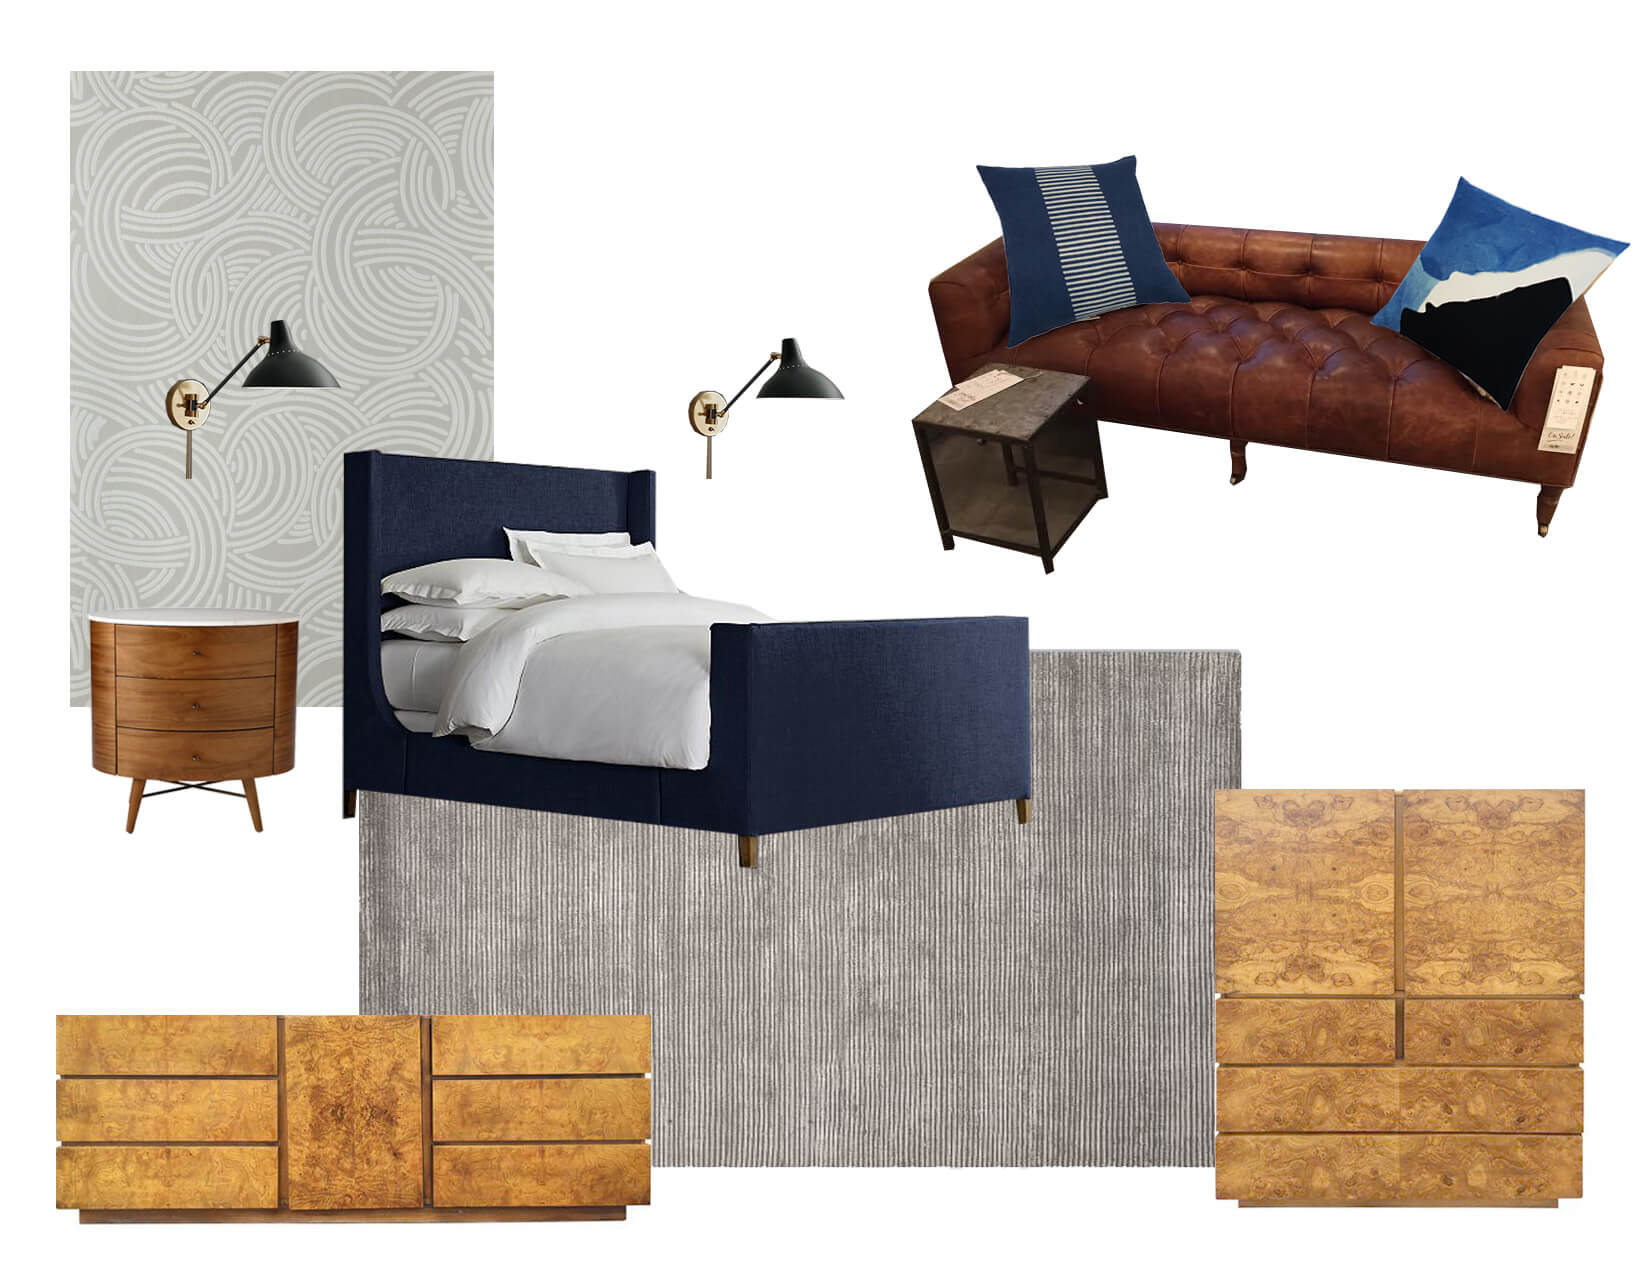 08_GINNY_MACDONALD_TRADITIONAL_BEDROOM_MOODBOARD